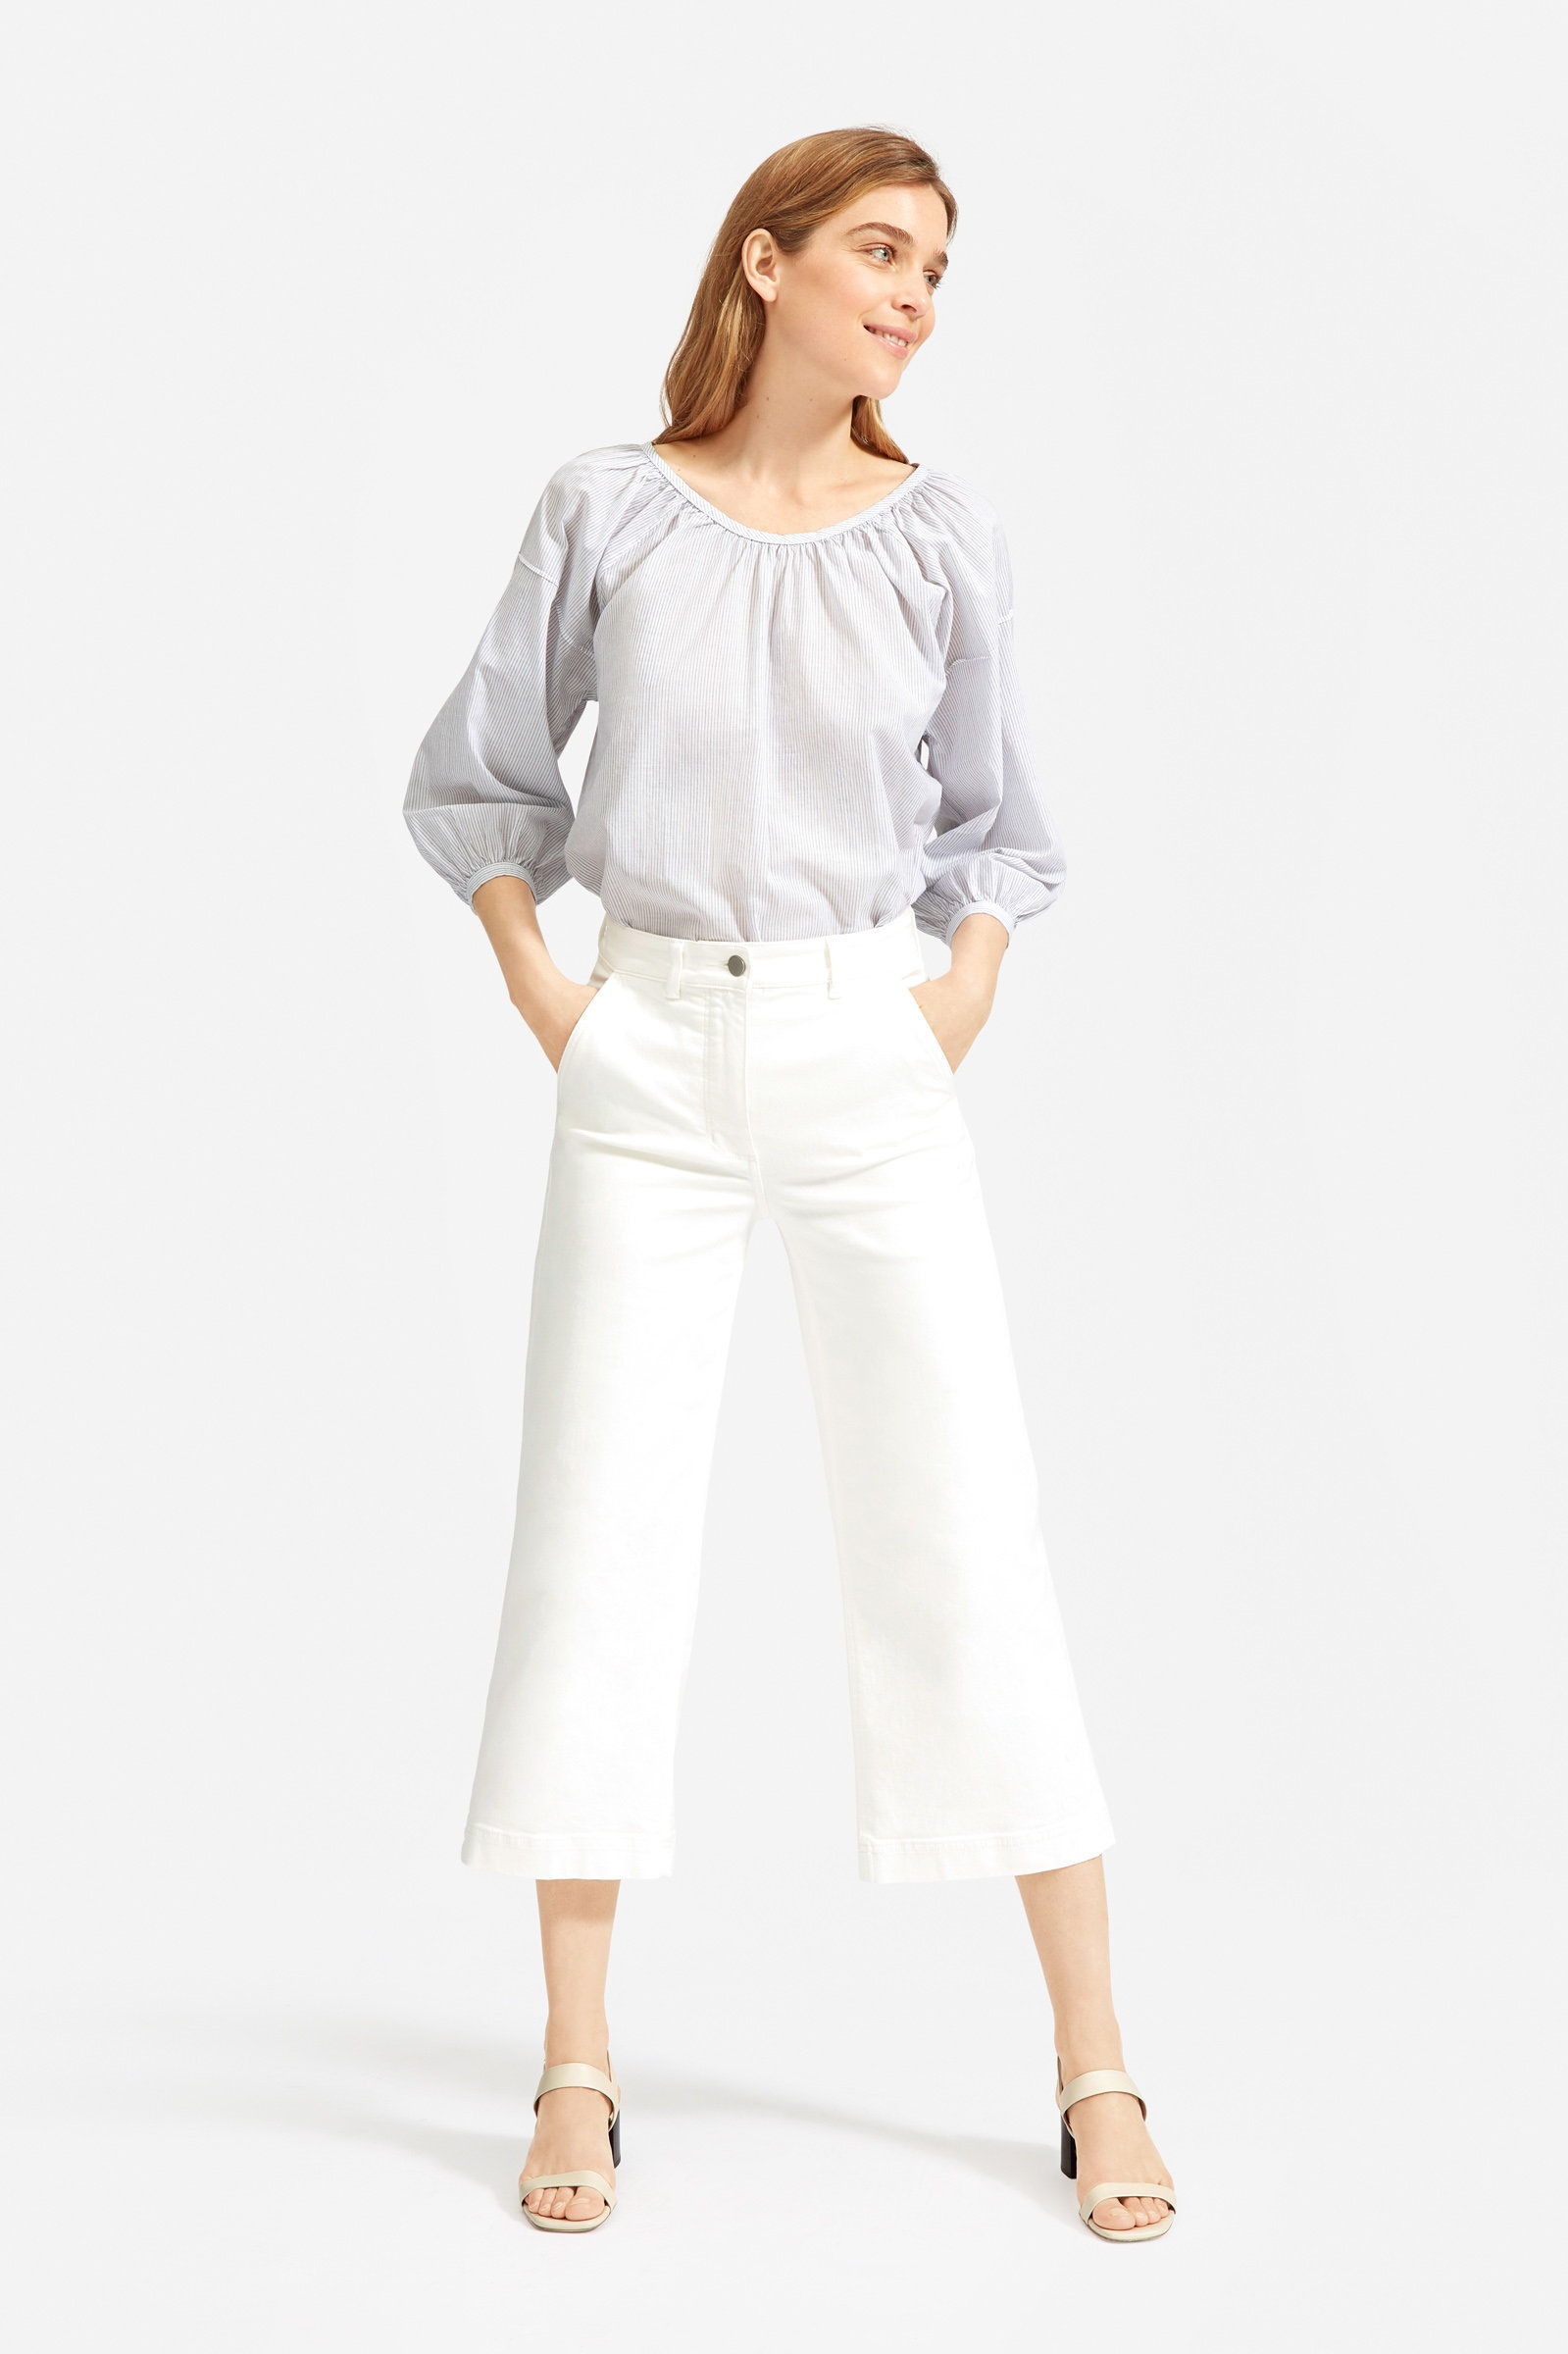 Ruched Air Blouse, $55, Everlane